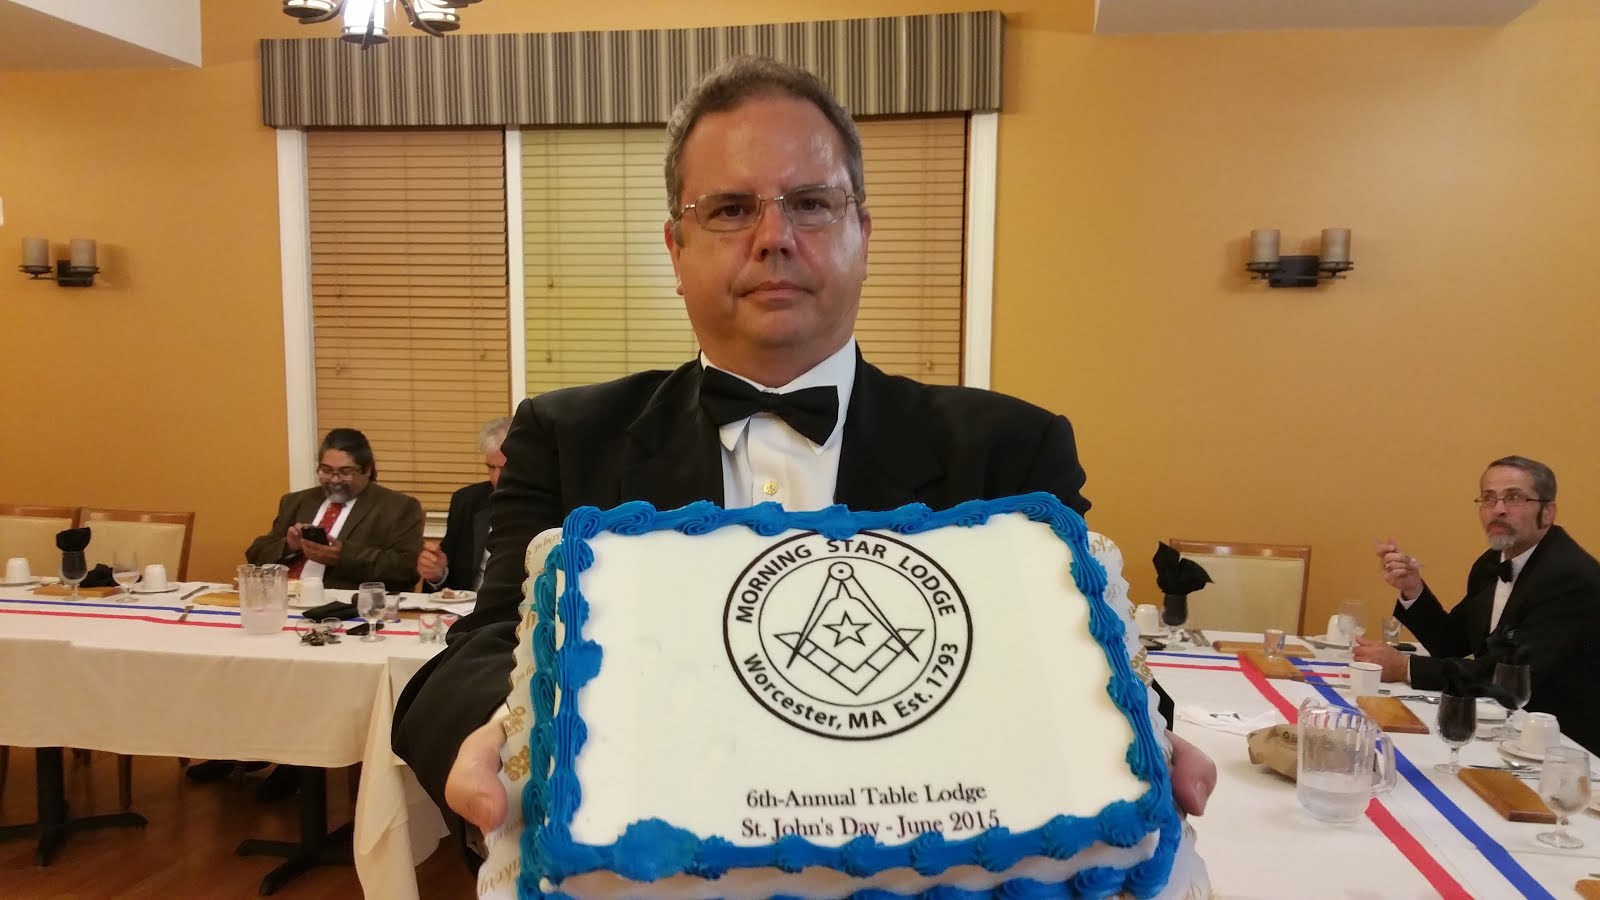 MSL's Annual Table Lodge